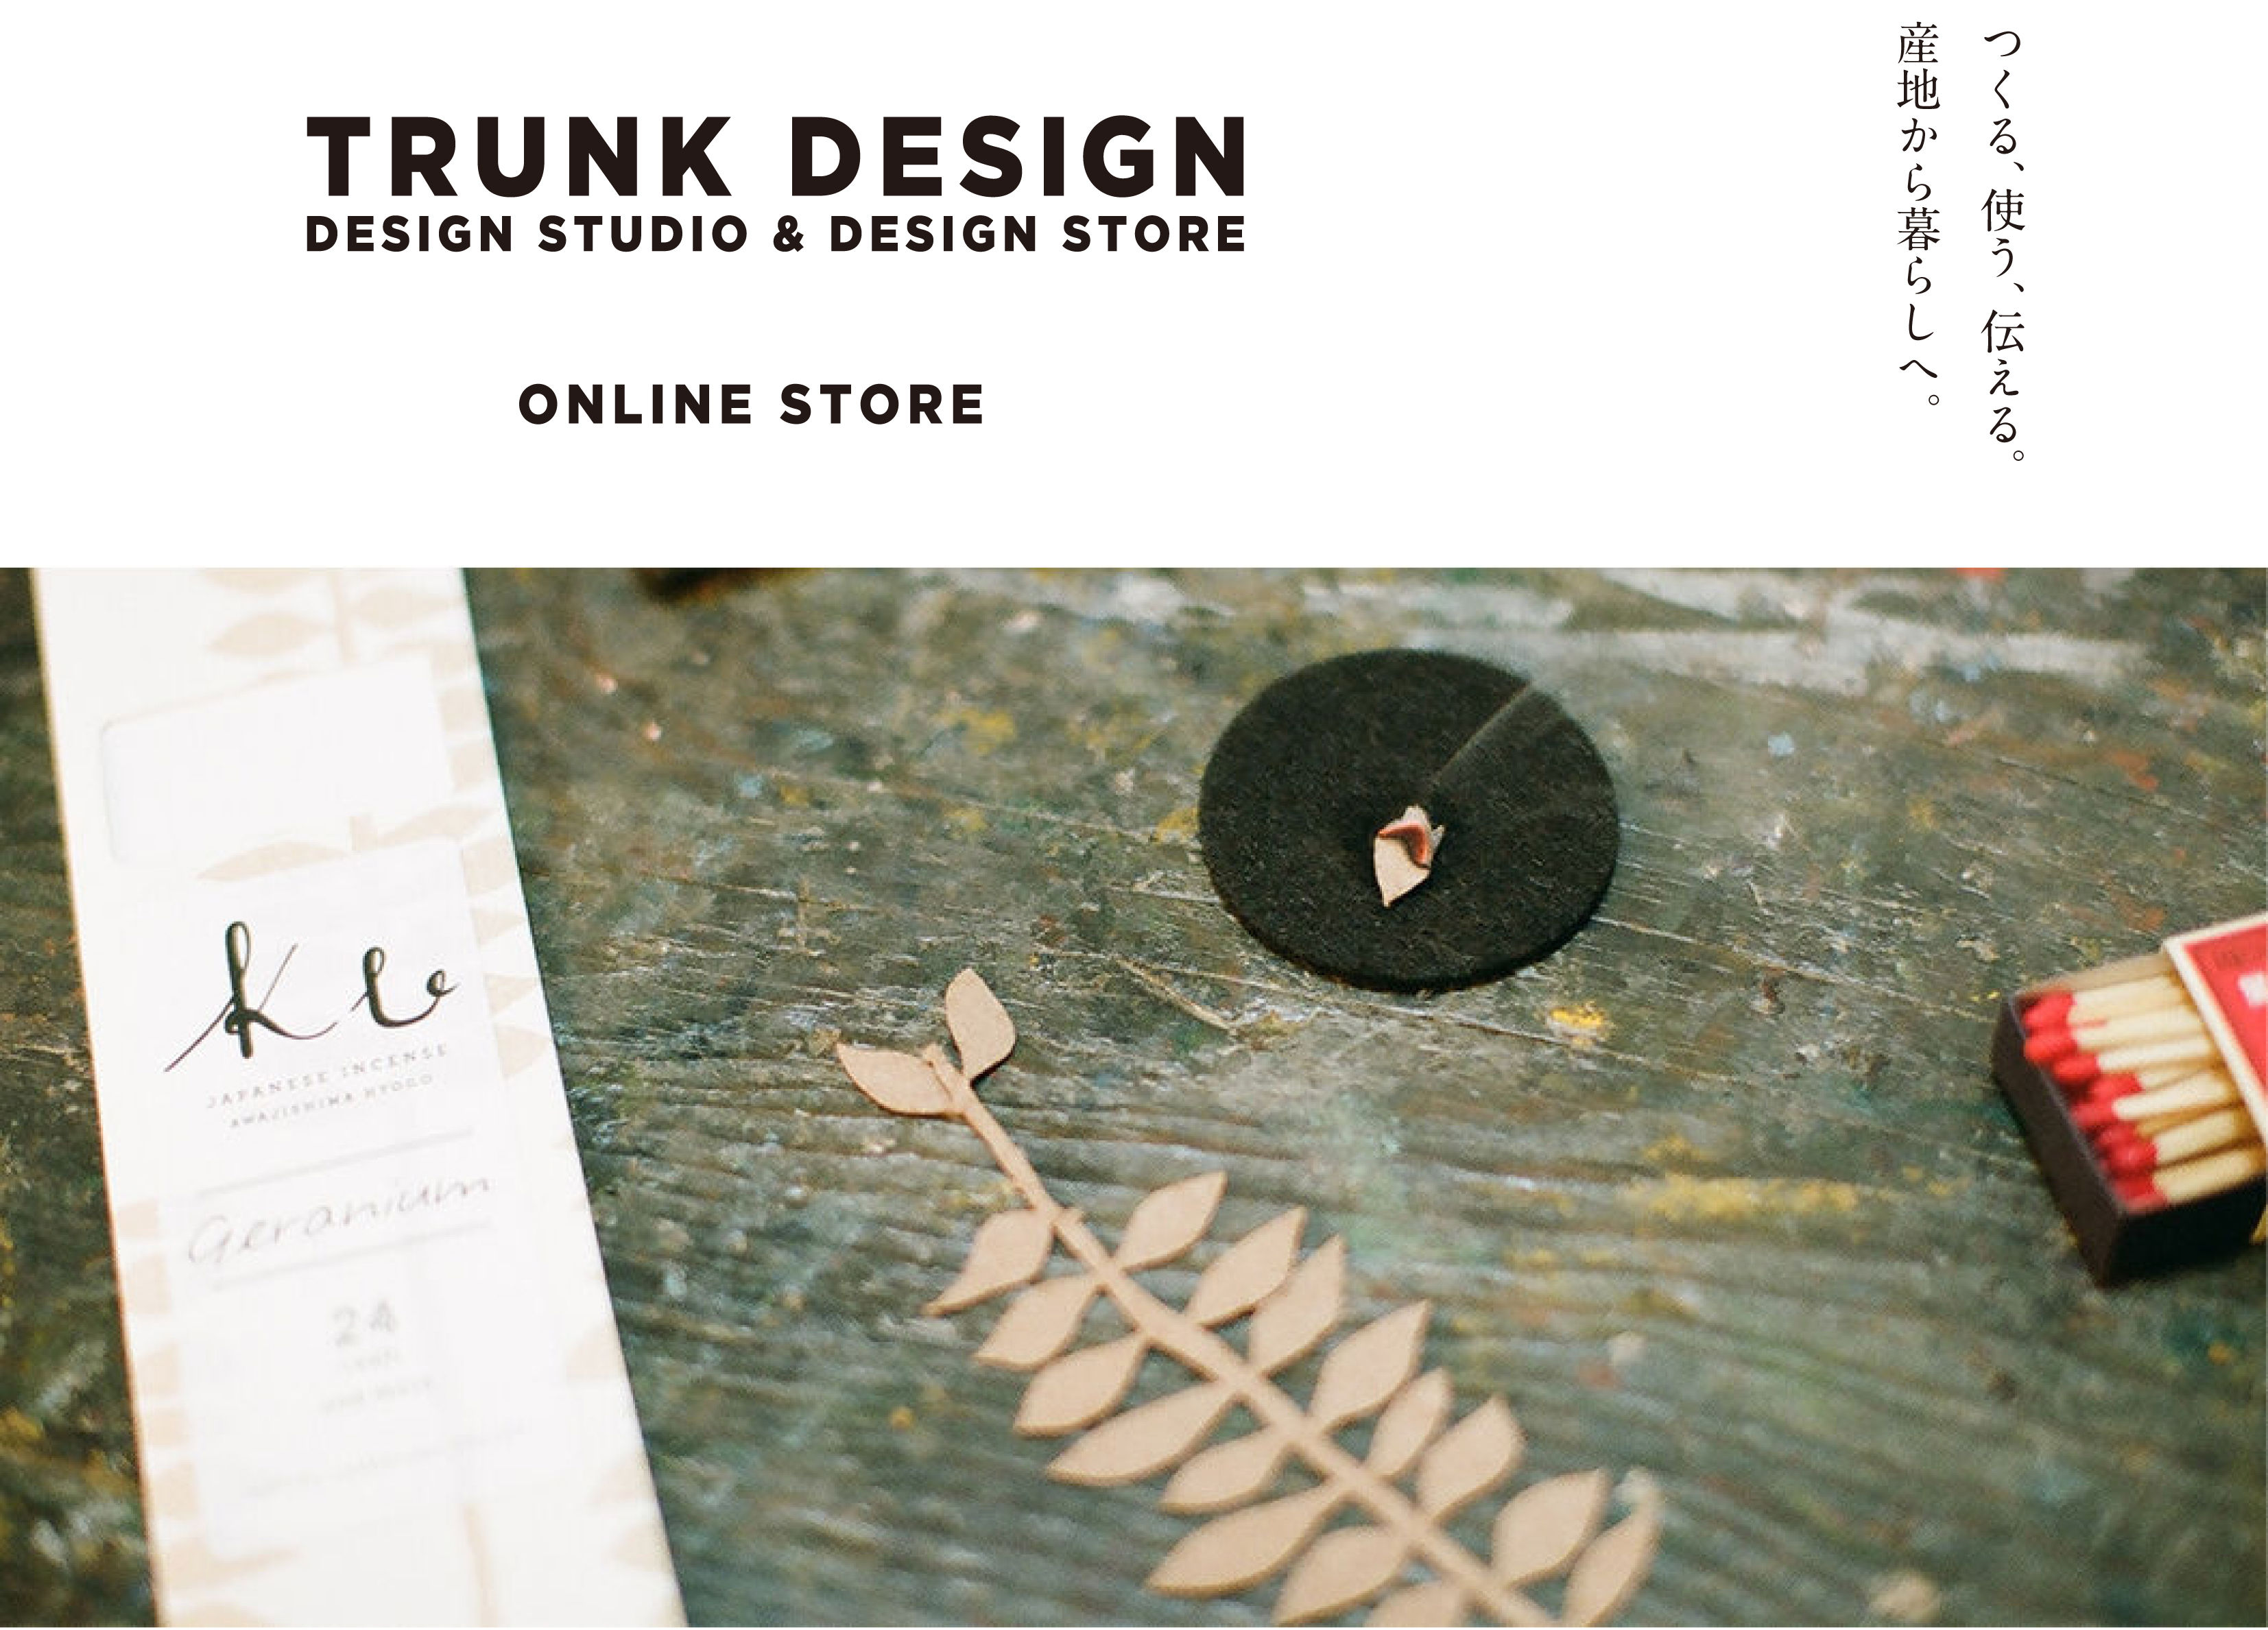 TRUNK DESIGN ONLINE STORE